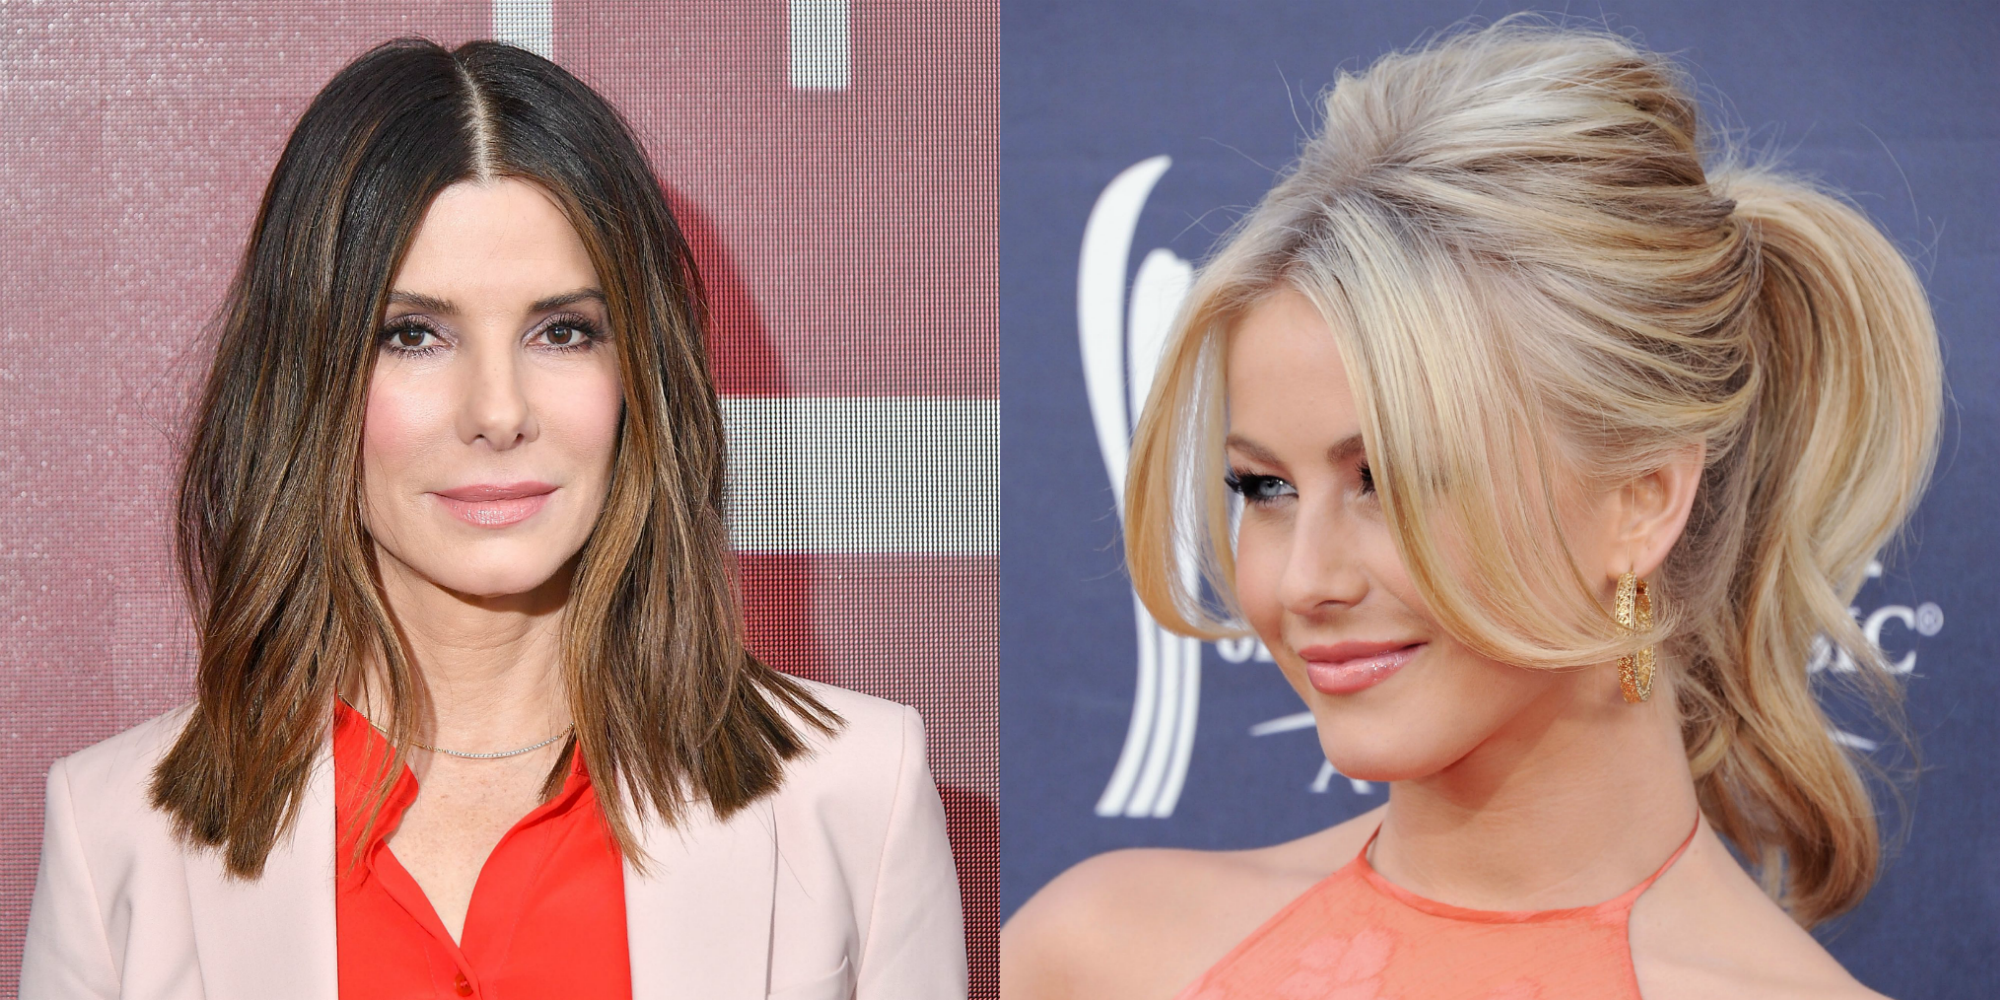 10 Best Hairstyles for Women with Thin Hair, According to